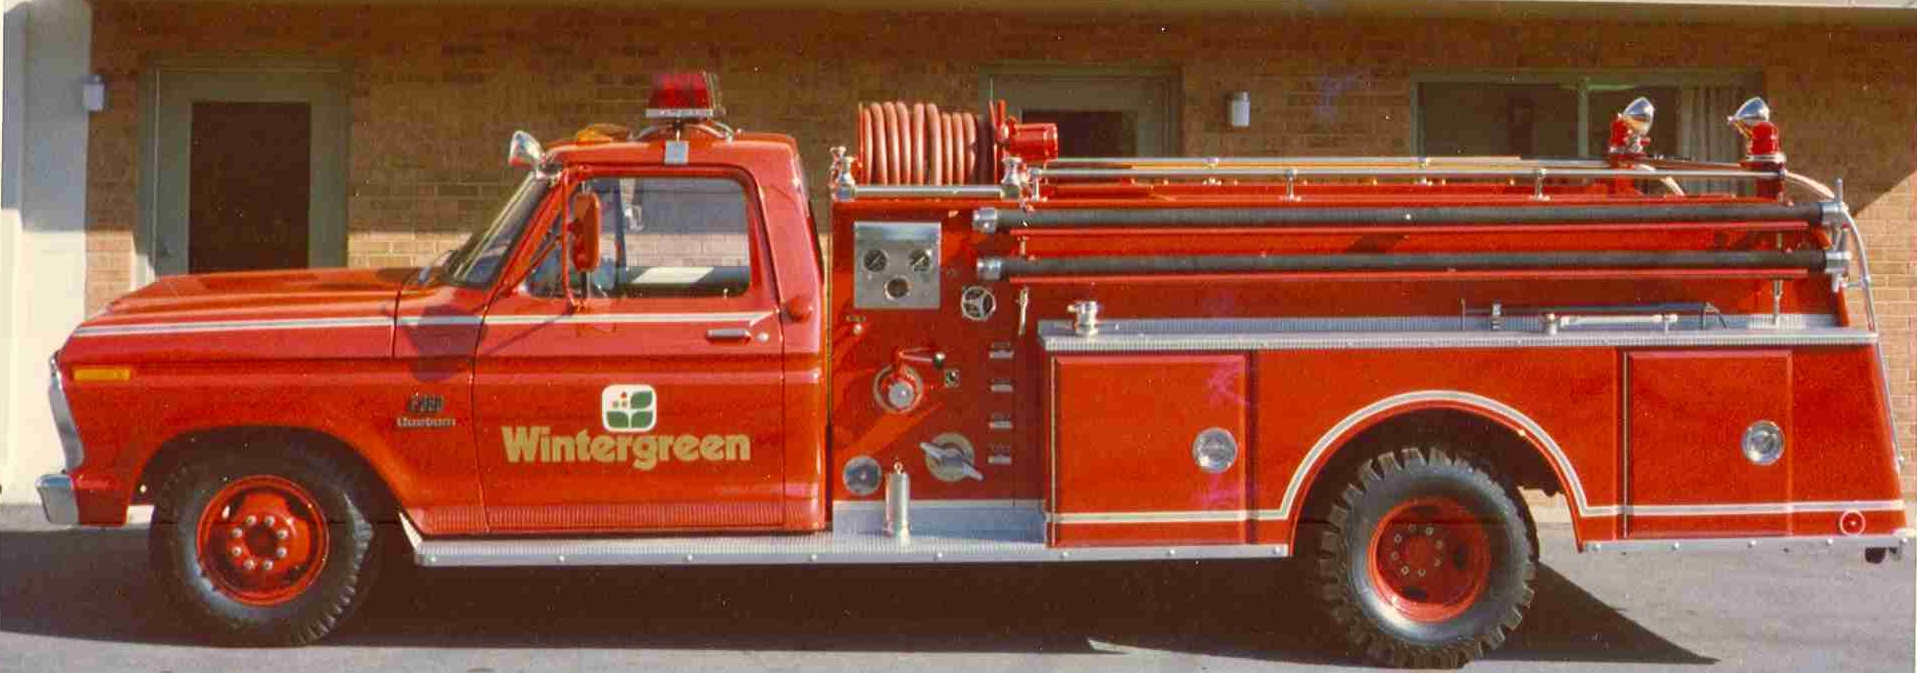 Wintergreen's first fire engine